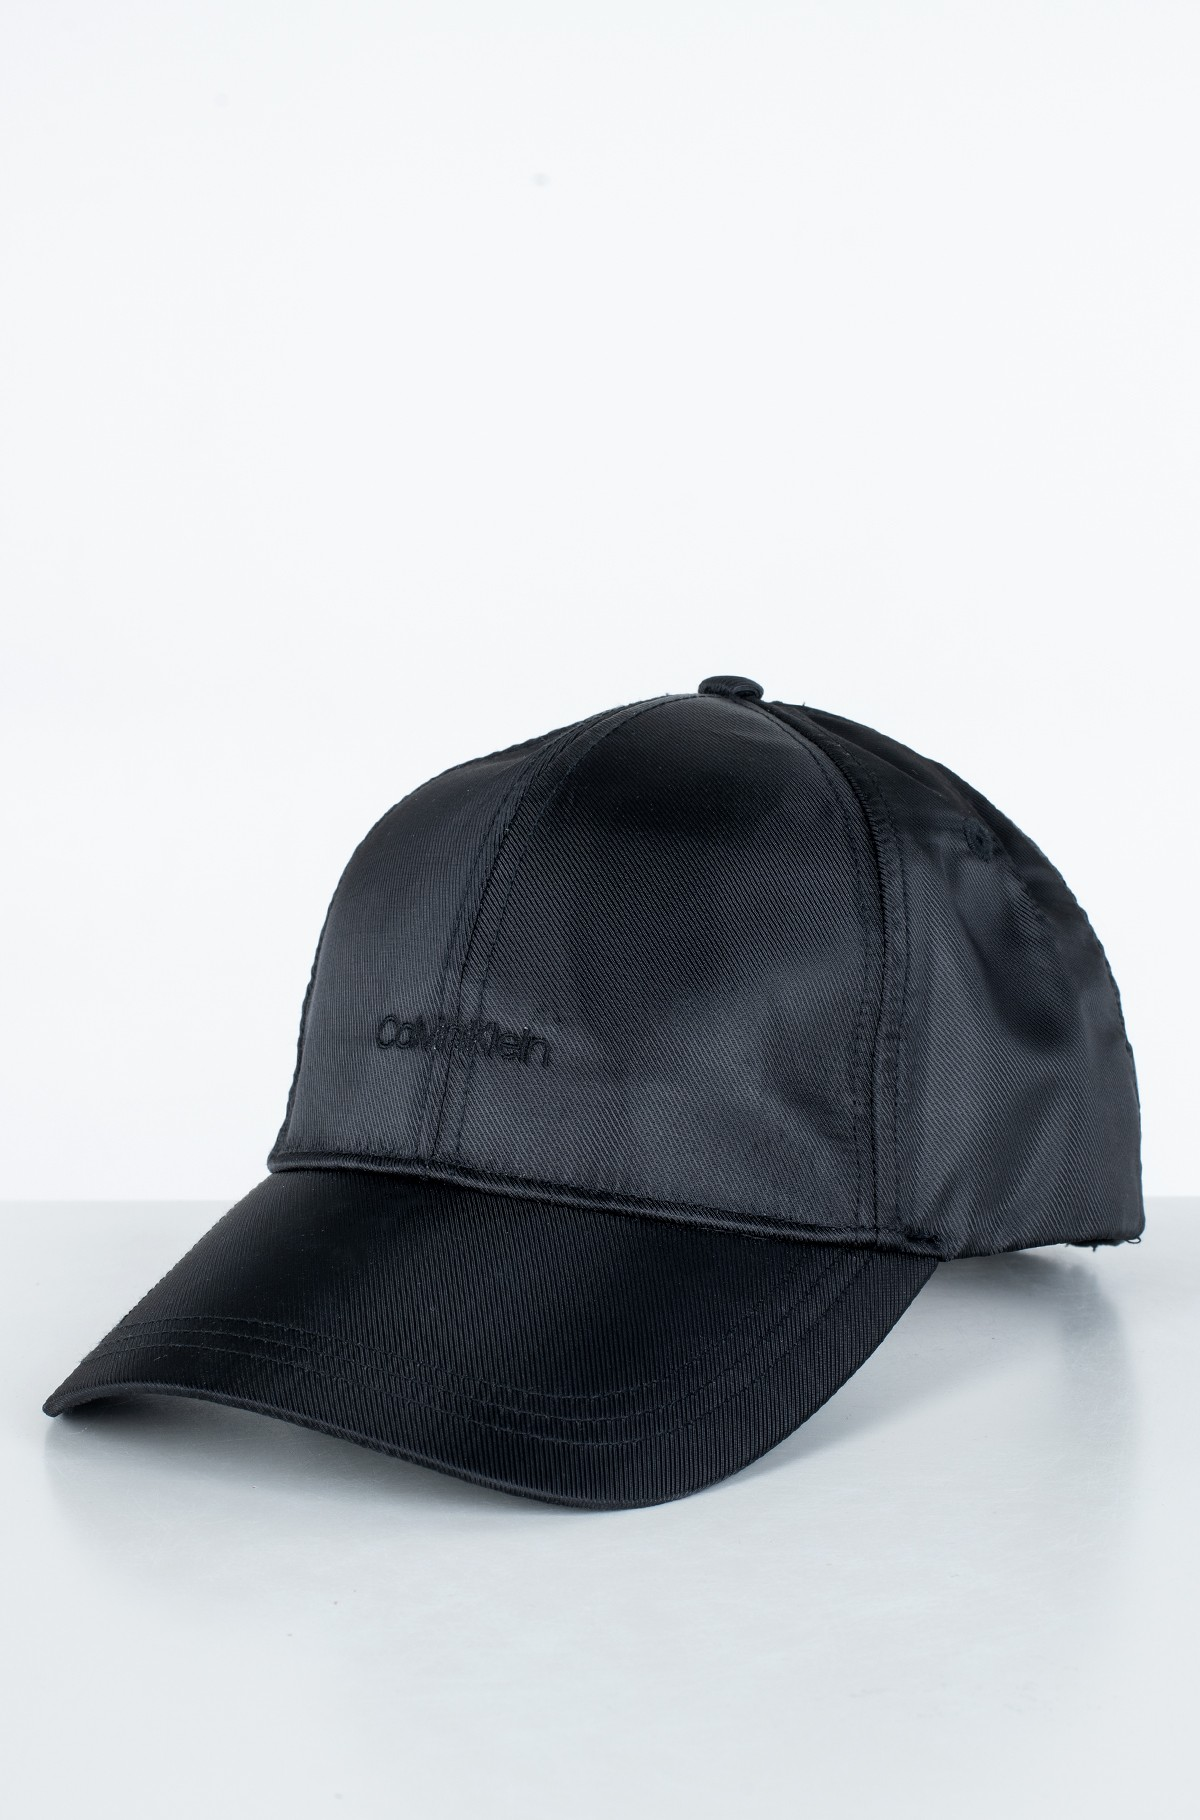 Nokamüts EMBROIDERY LOGO SATIN BB CAP-full-1